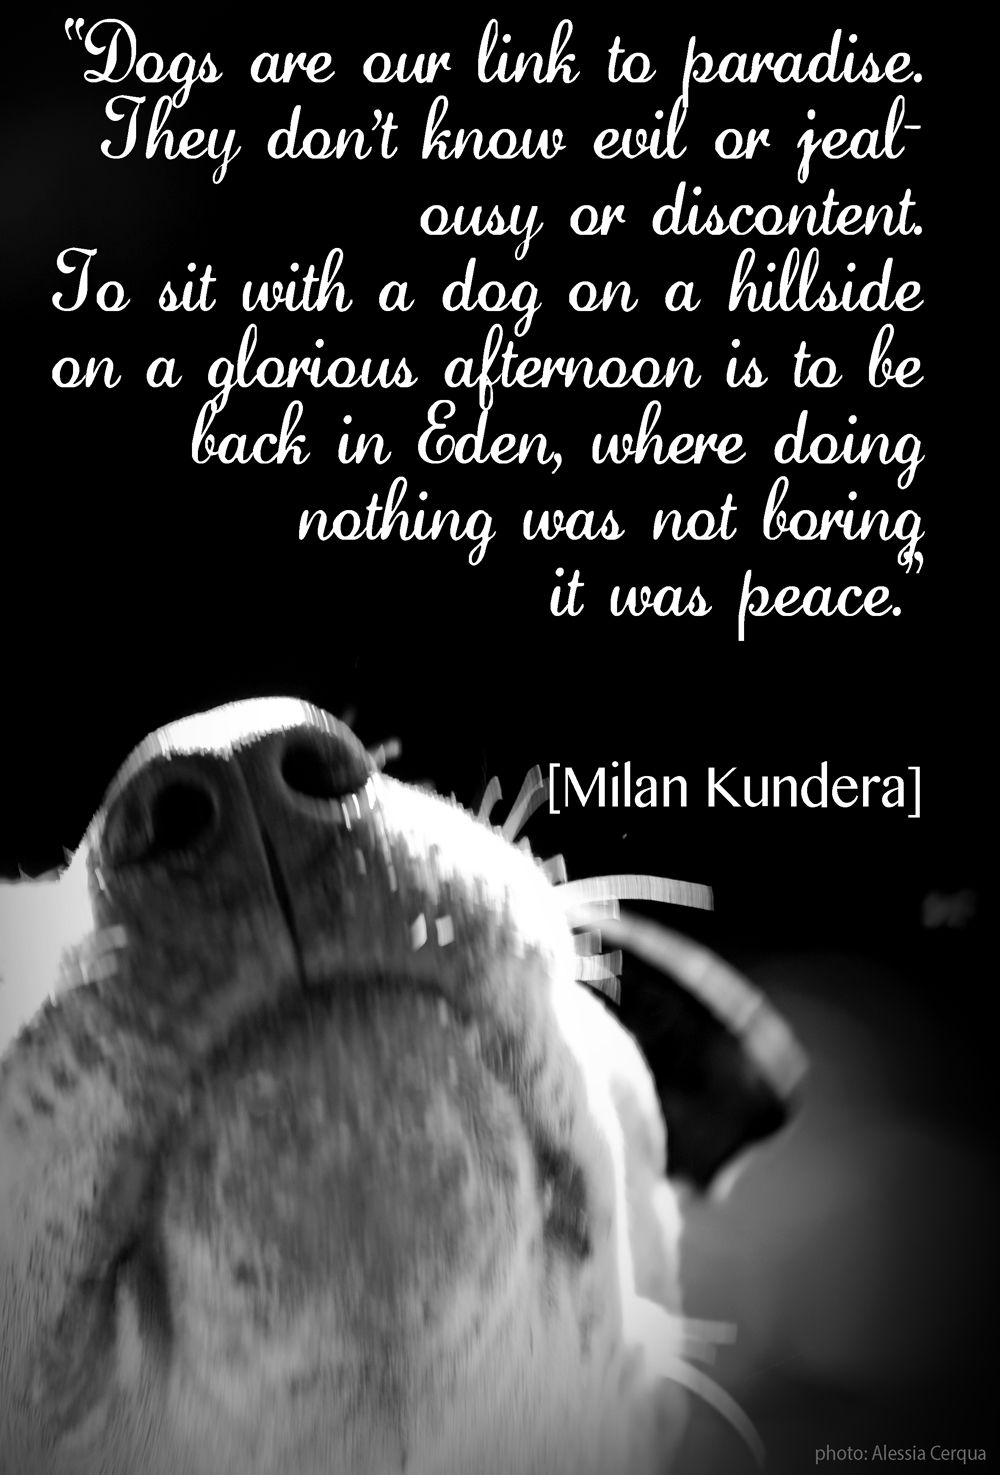 Dogs' unconditional love. Like dogs? Be sure to visit and